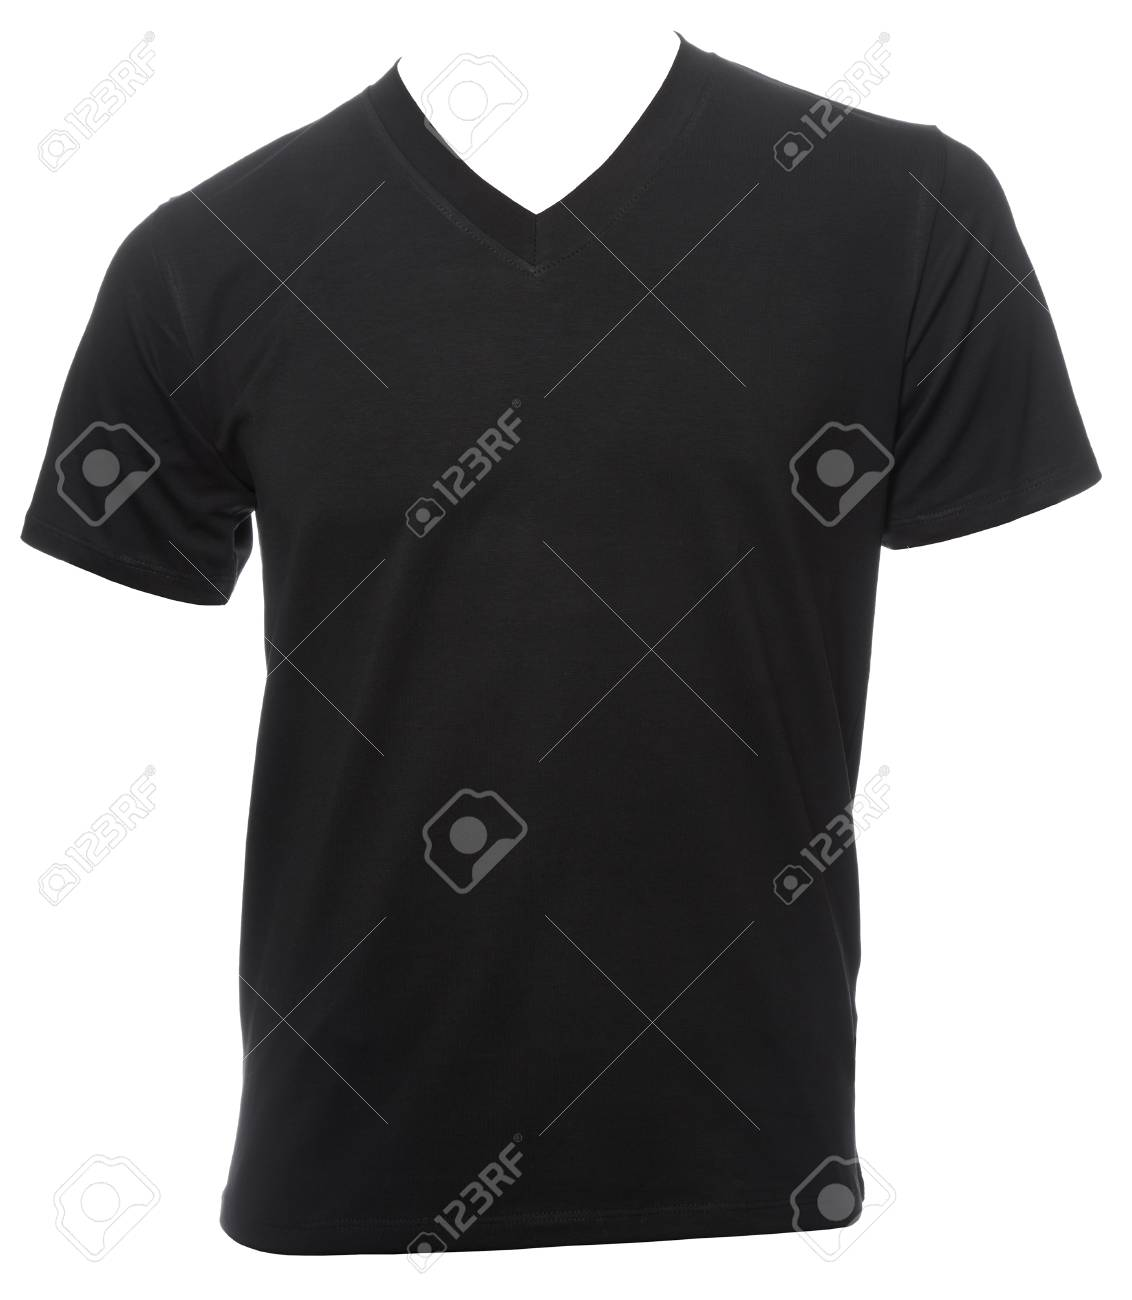 Black Plain Shortsleeve Cotton T Shirt Template Isolated On A